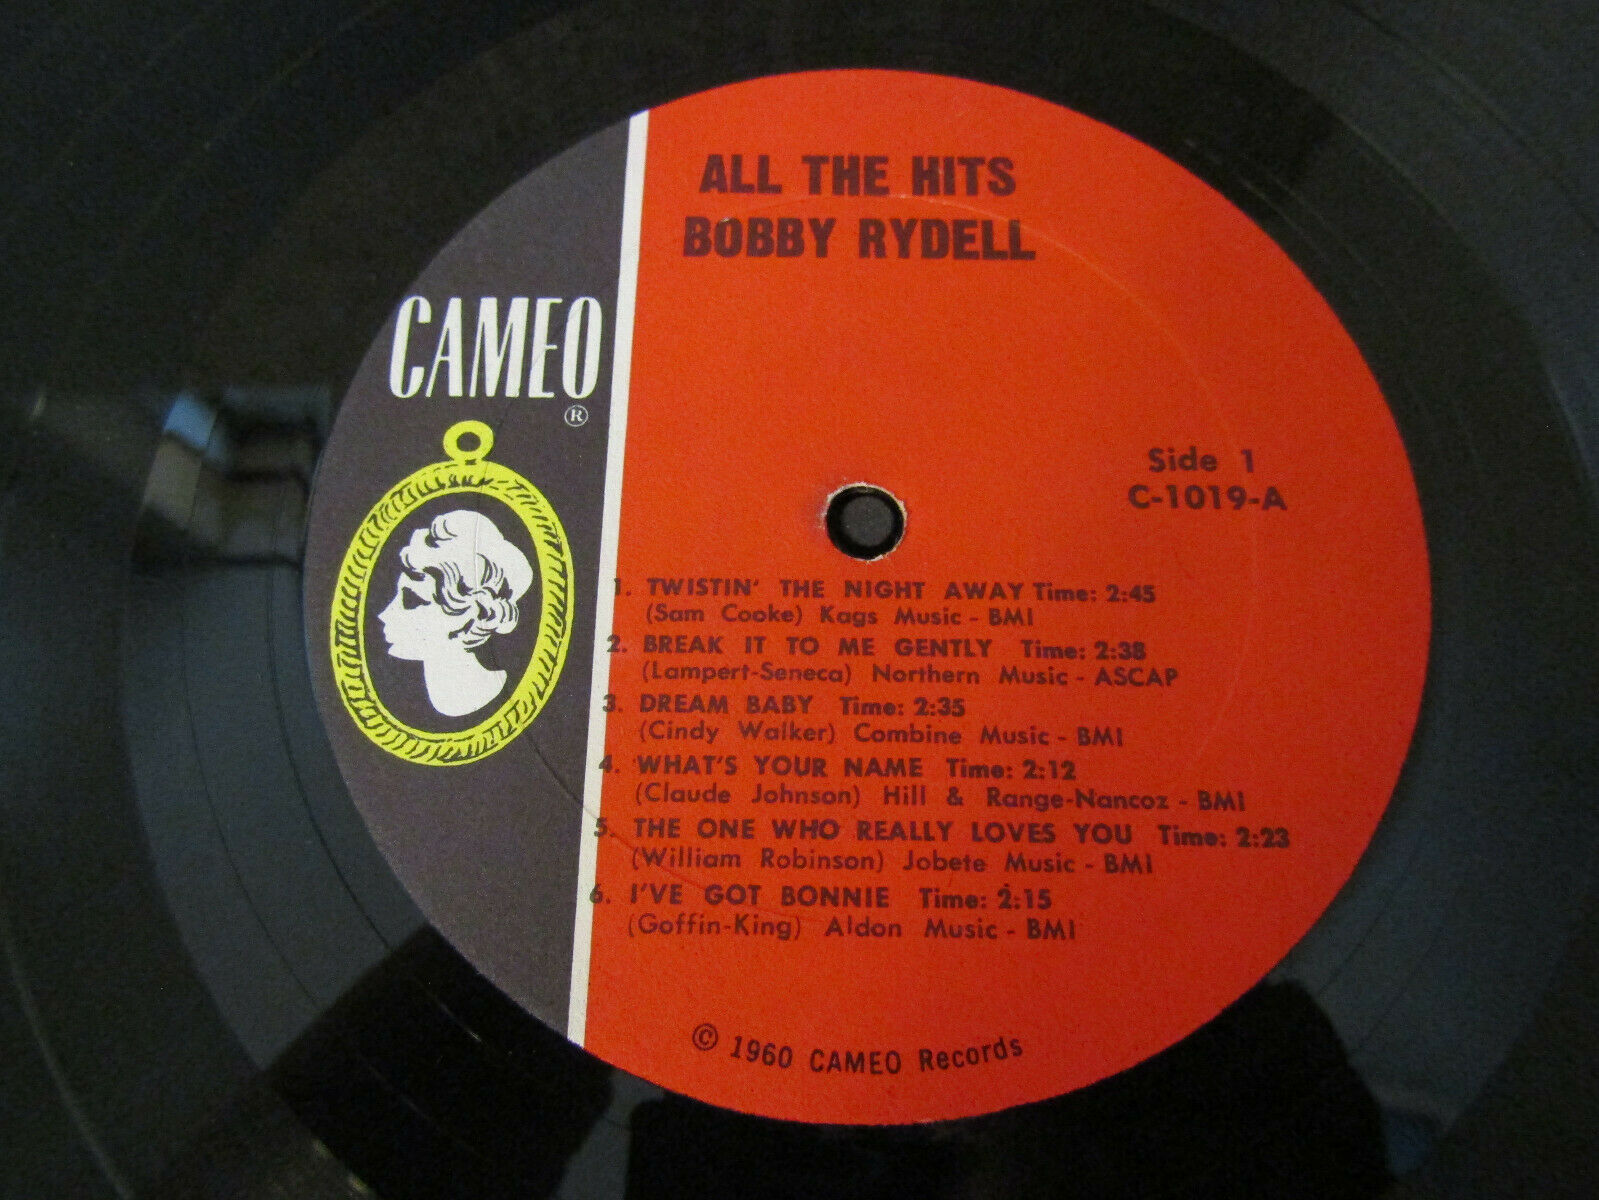 Bobby Rydell All The Hits Cameo C1019 Mono Vinyl Record LP Album image 5